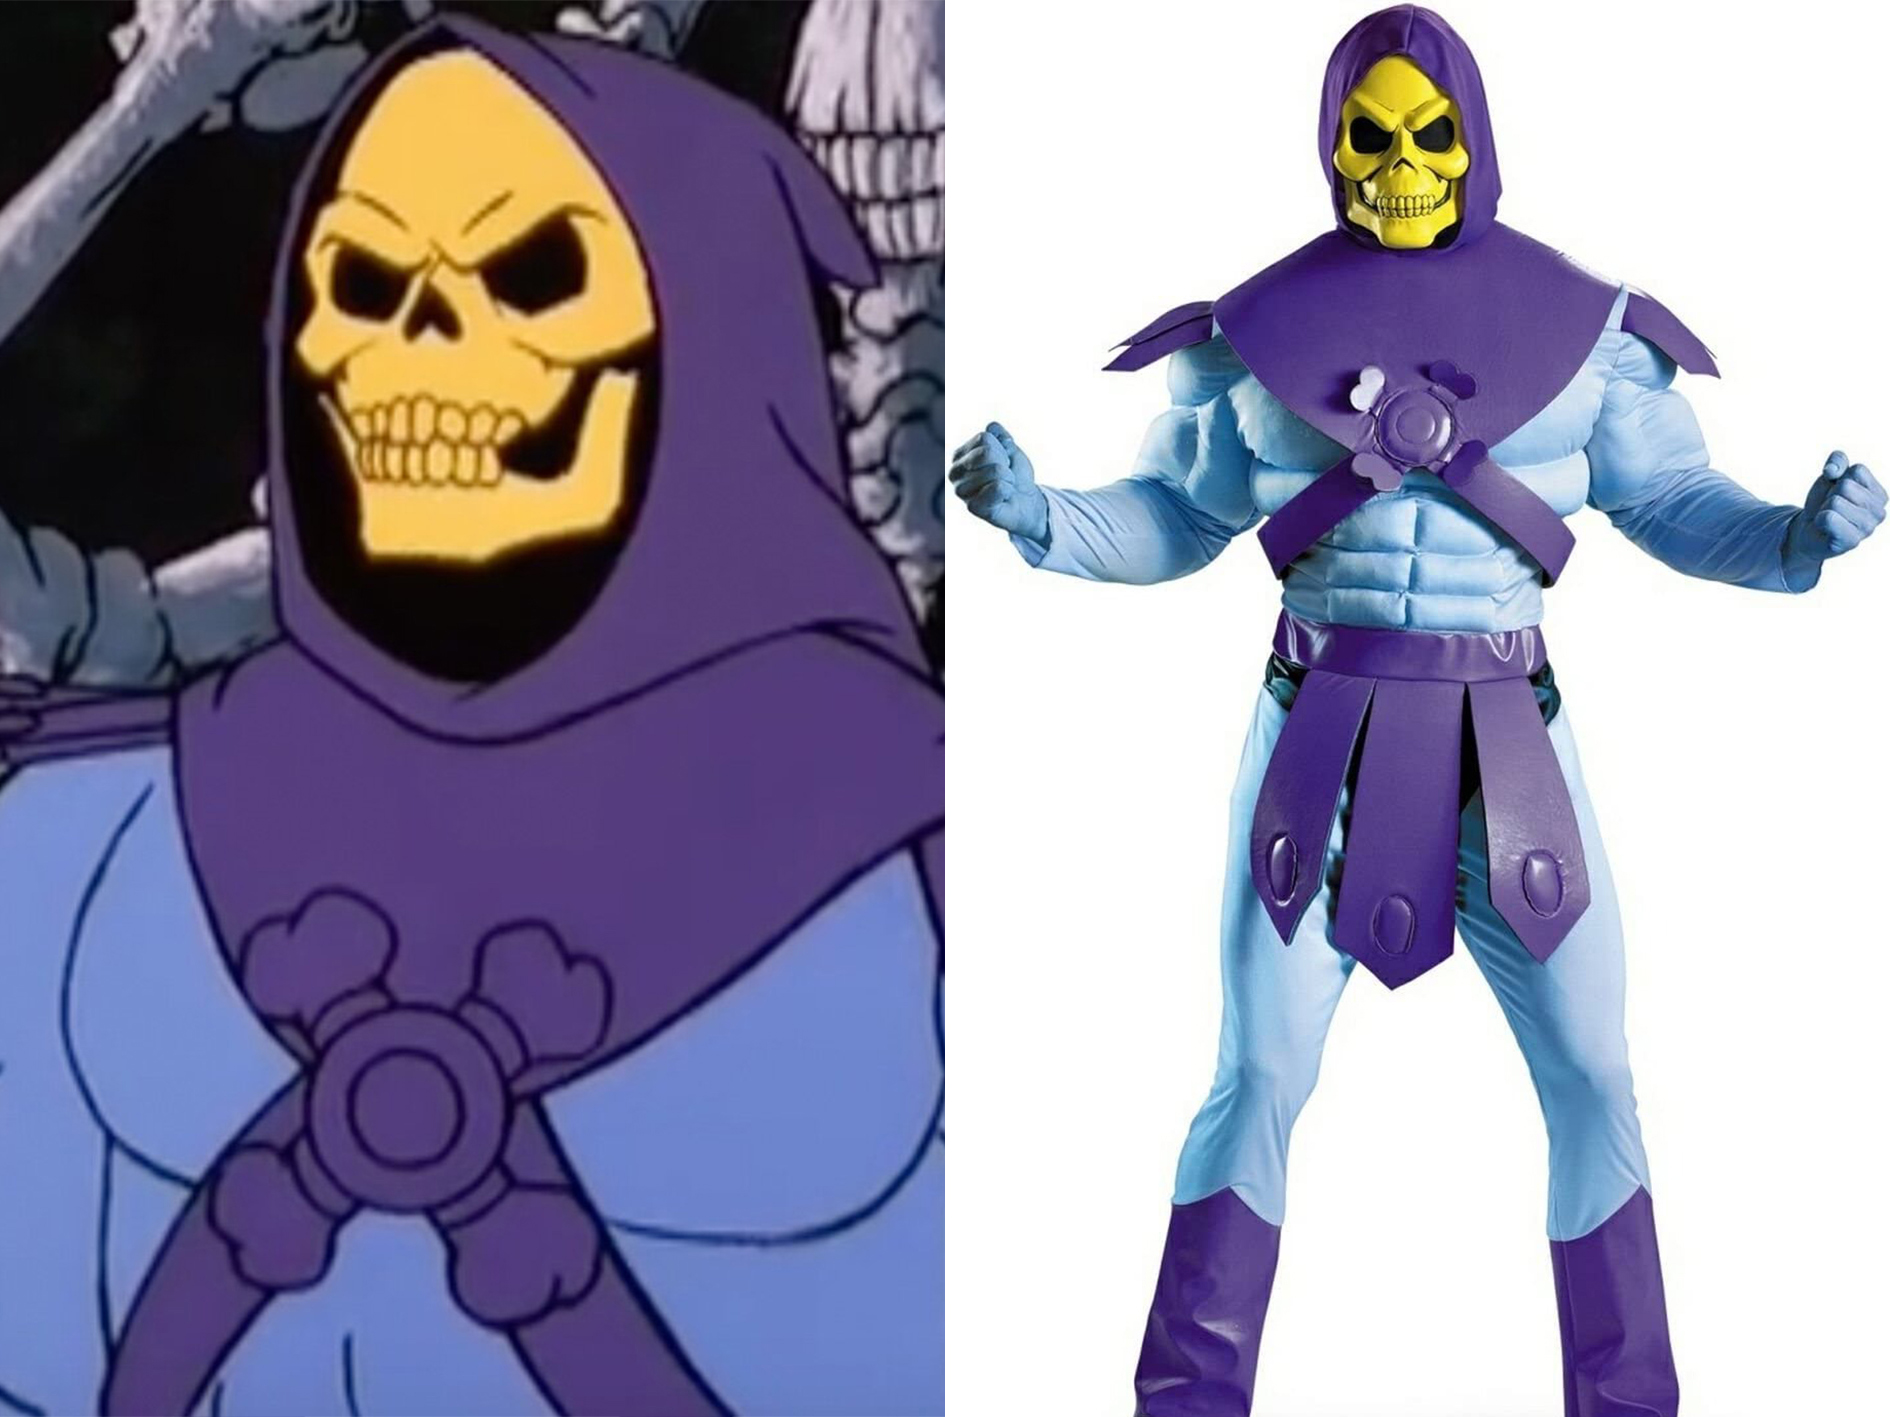 Skeletor 15 Halloween Costumes Inspired By The 80s - Who Will You Go As?